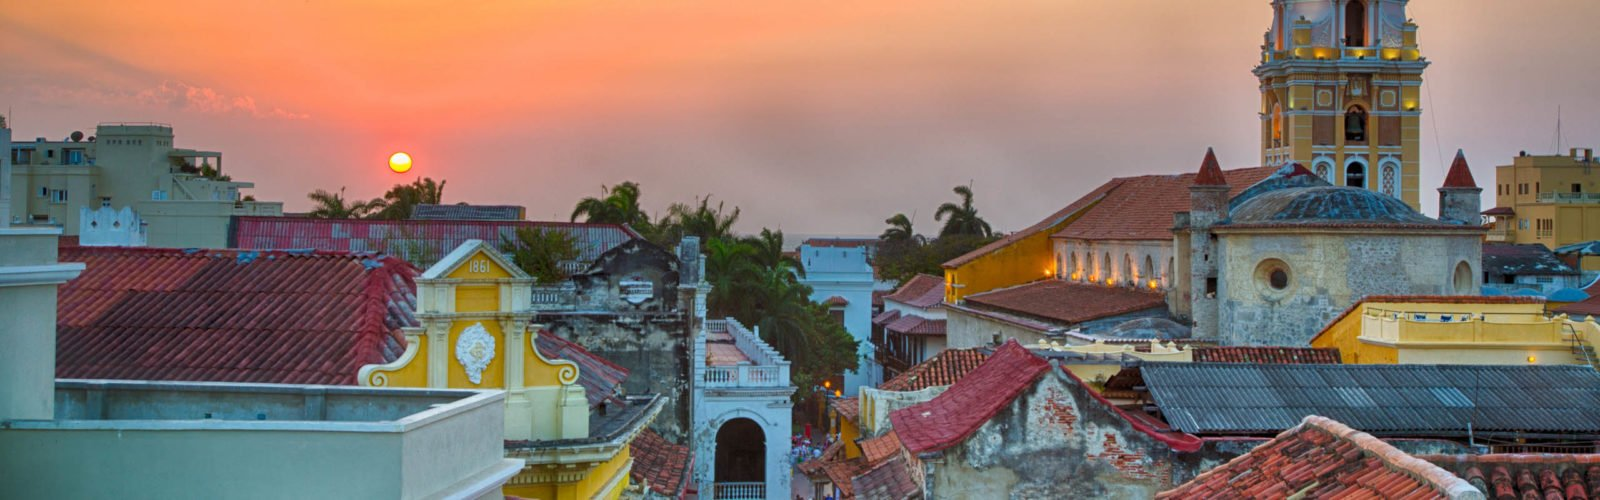 sunset-cartagena-colombia